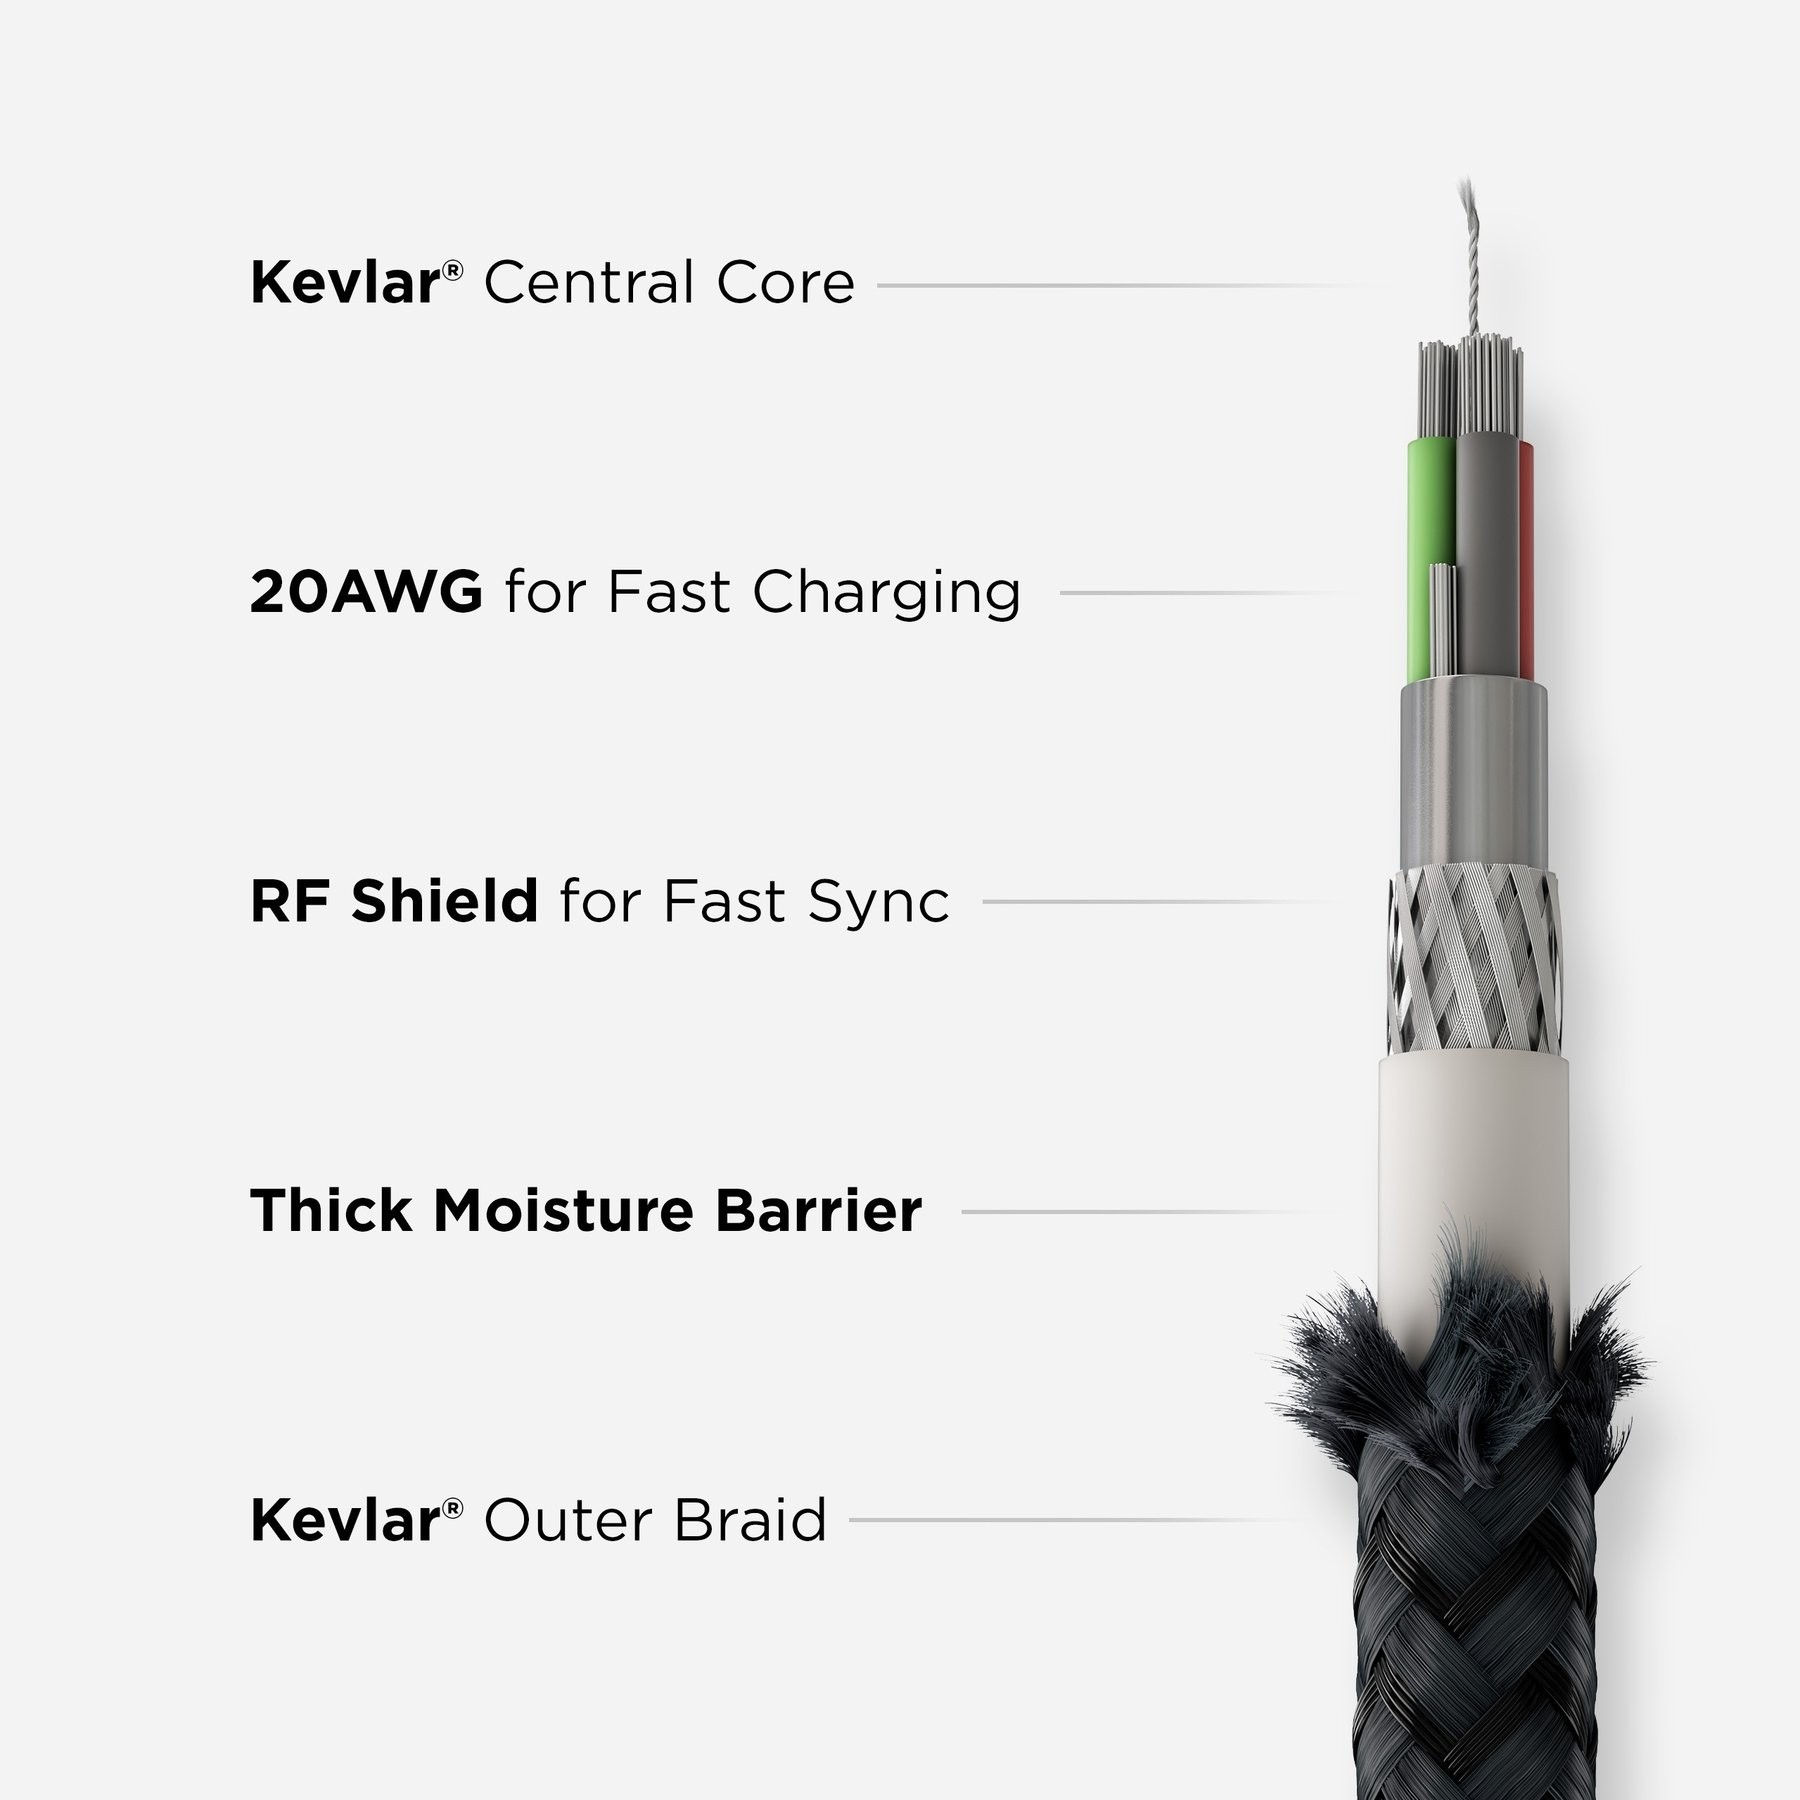 Nomad - USB-C To Lightning Cable - With Kevlar, 1.5 m, NM01912000